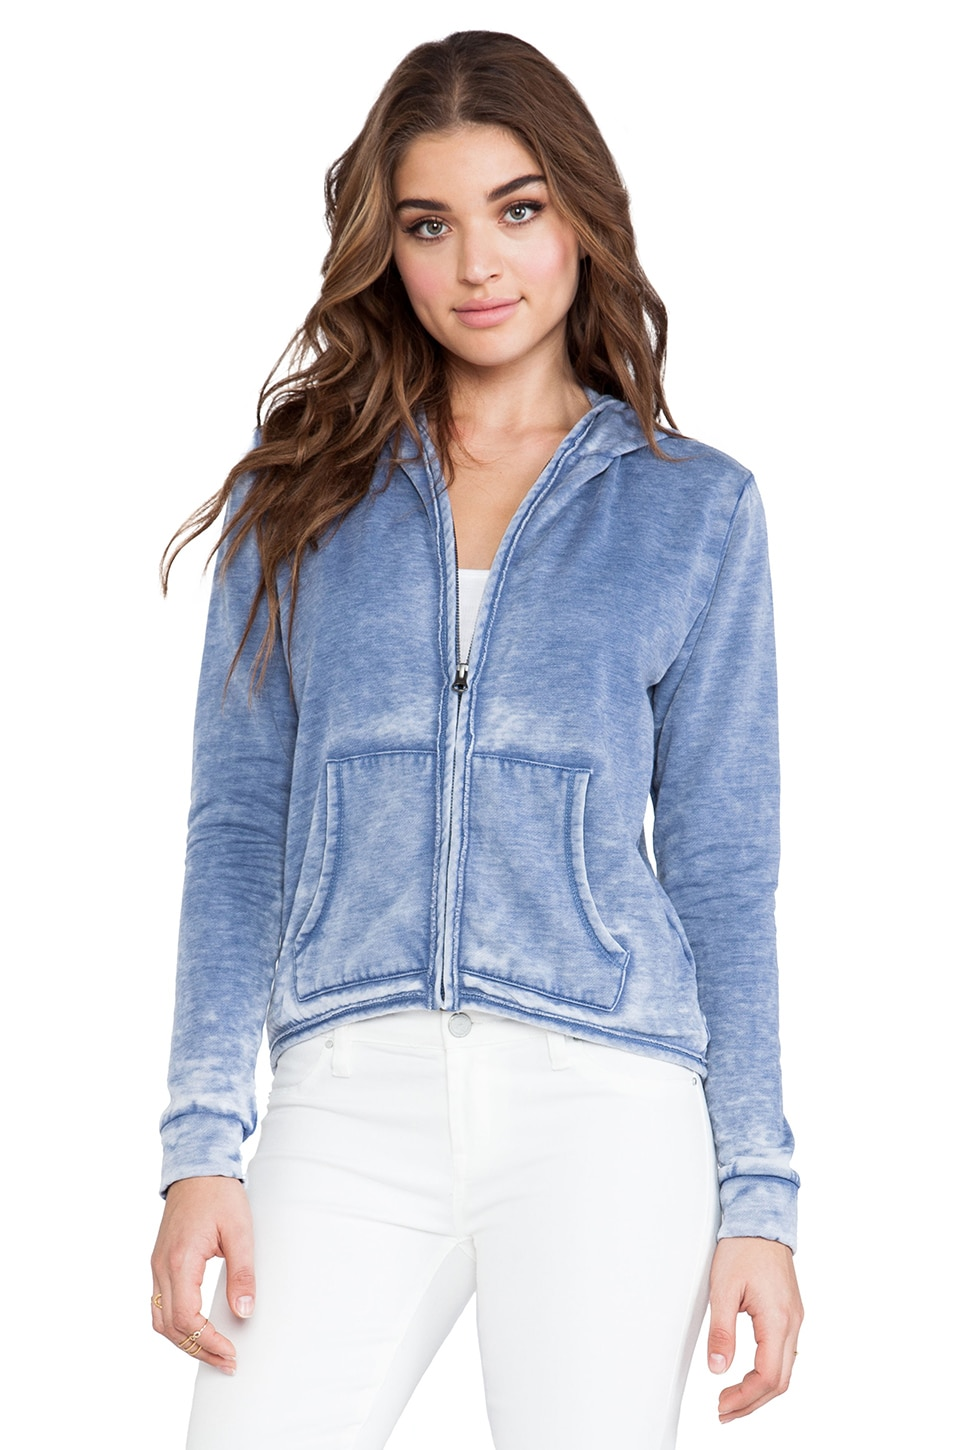 Bobi Enzyme Washed Sweatshirt in Blue